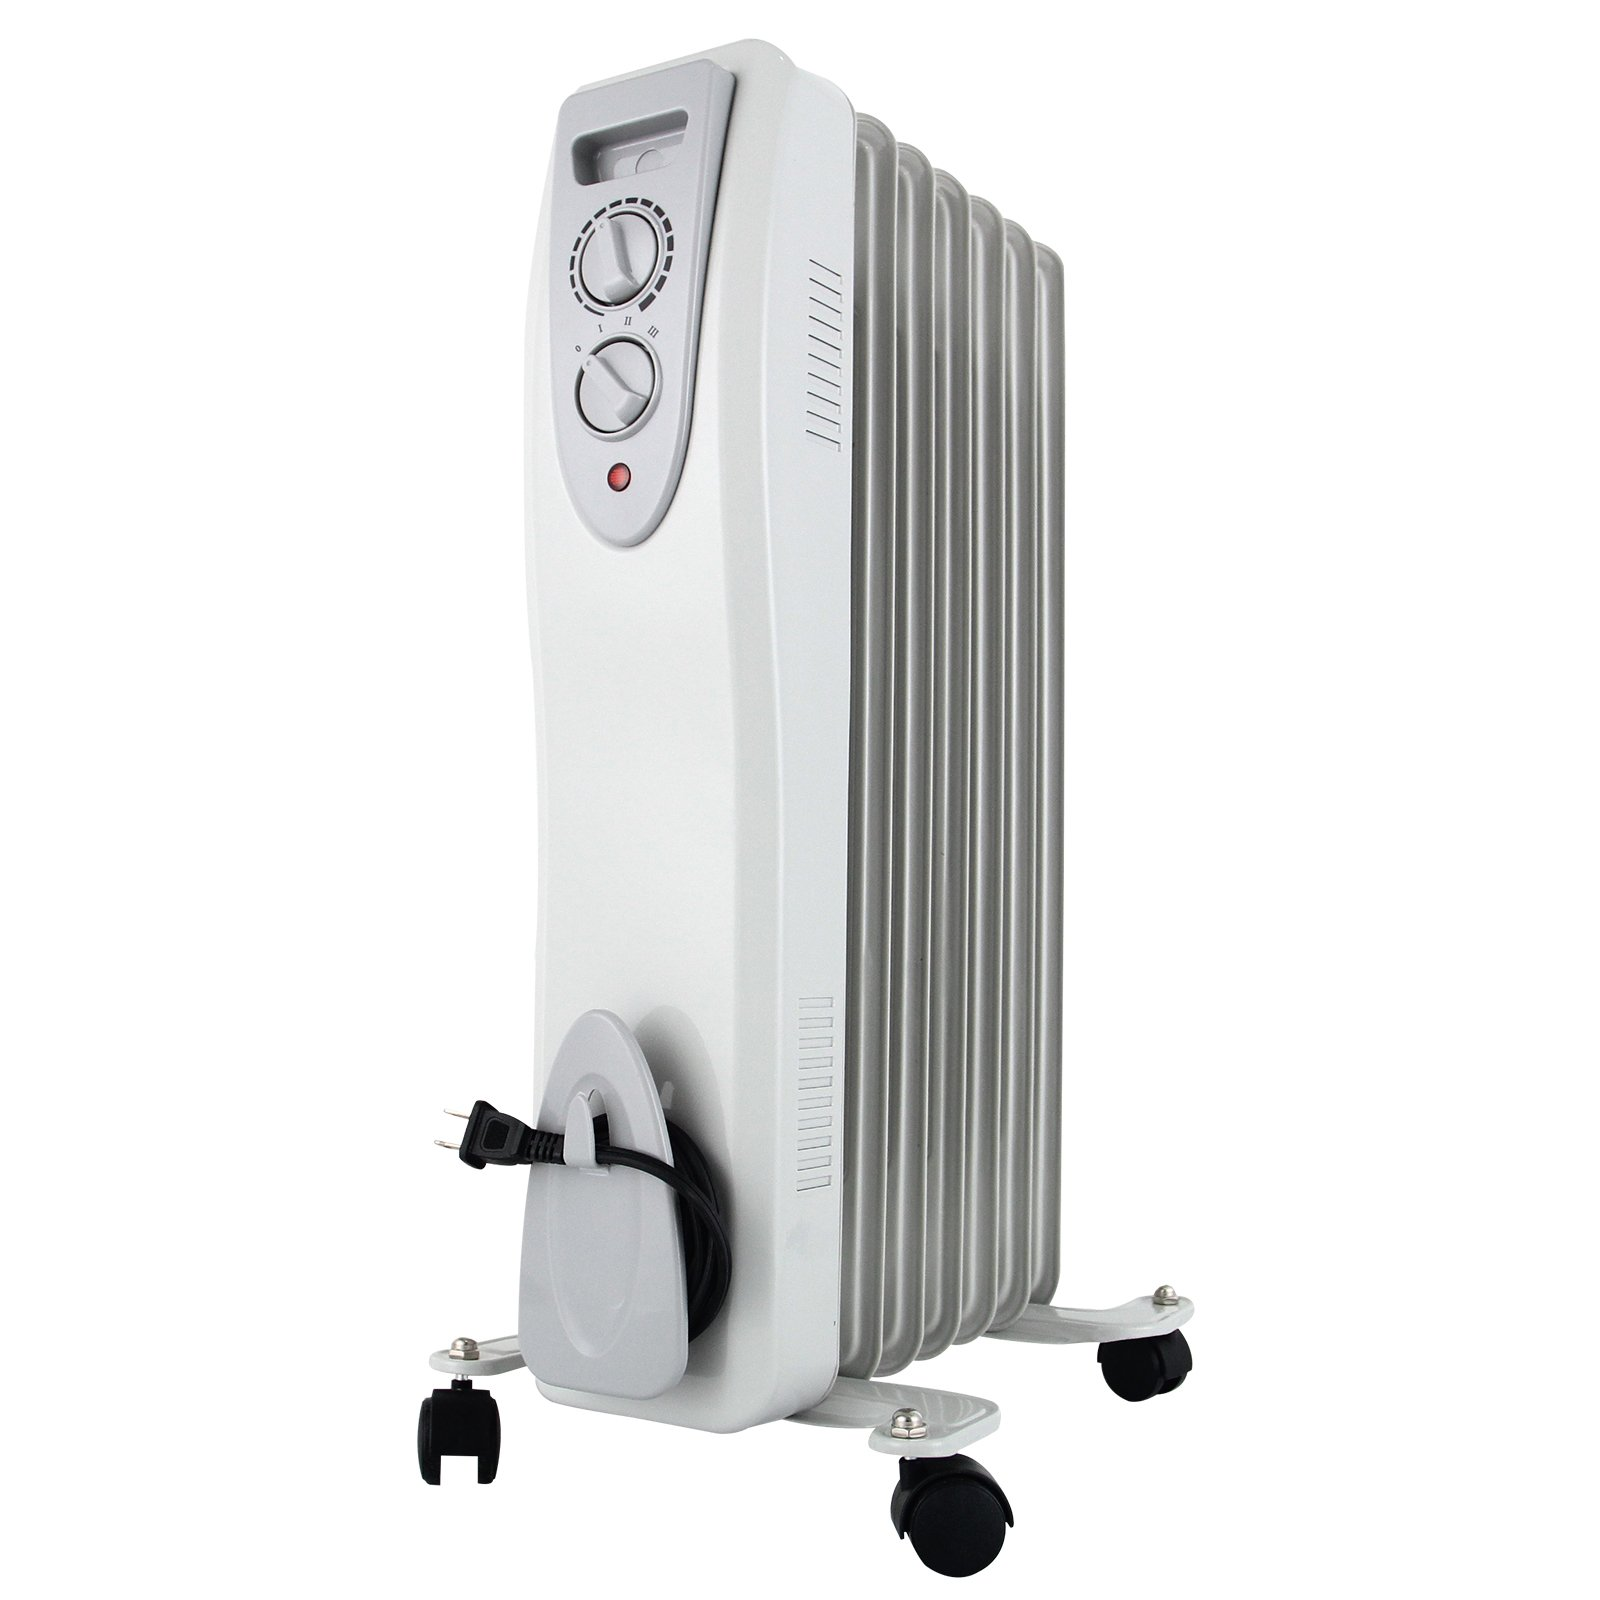 KUPPET YA400100 Electric Oil Filled Radiator Radiant Heater, Portable Radiant Space Heater For Home Room with Adjustable Thermostat, Auto Shut off, 6-Fin, 1500W, 3 Power Settings, White